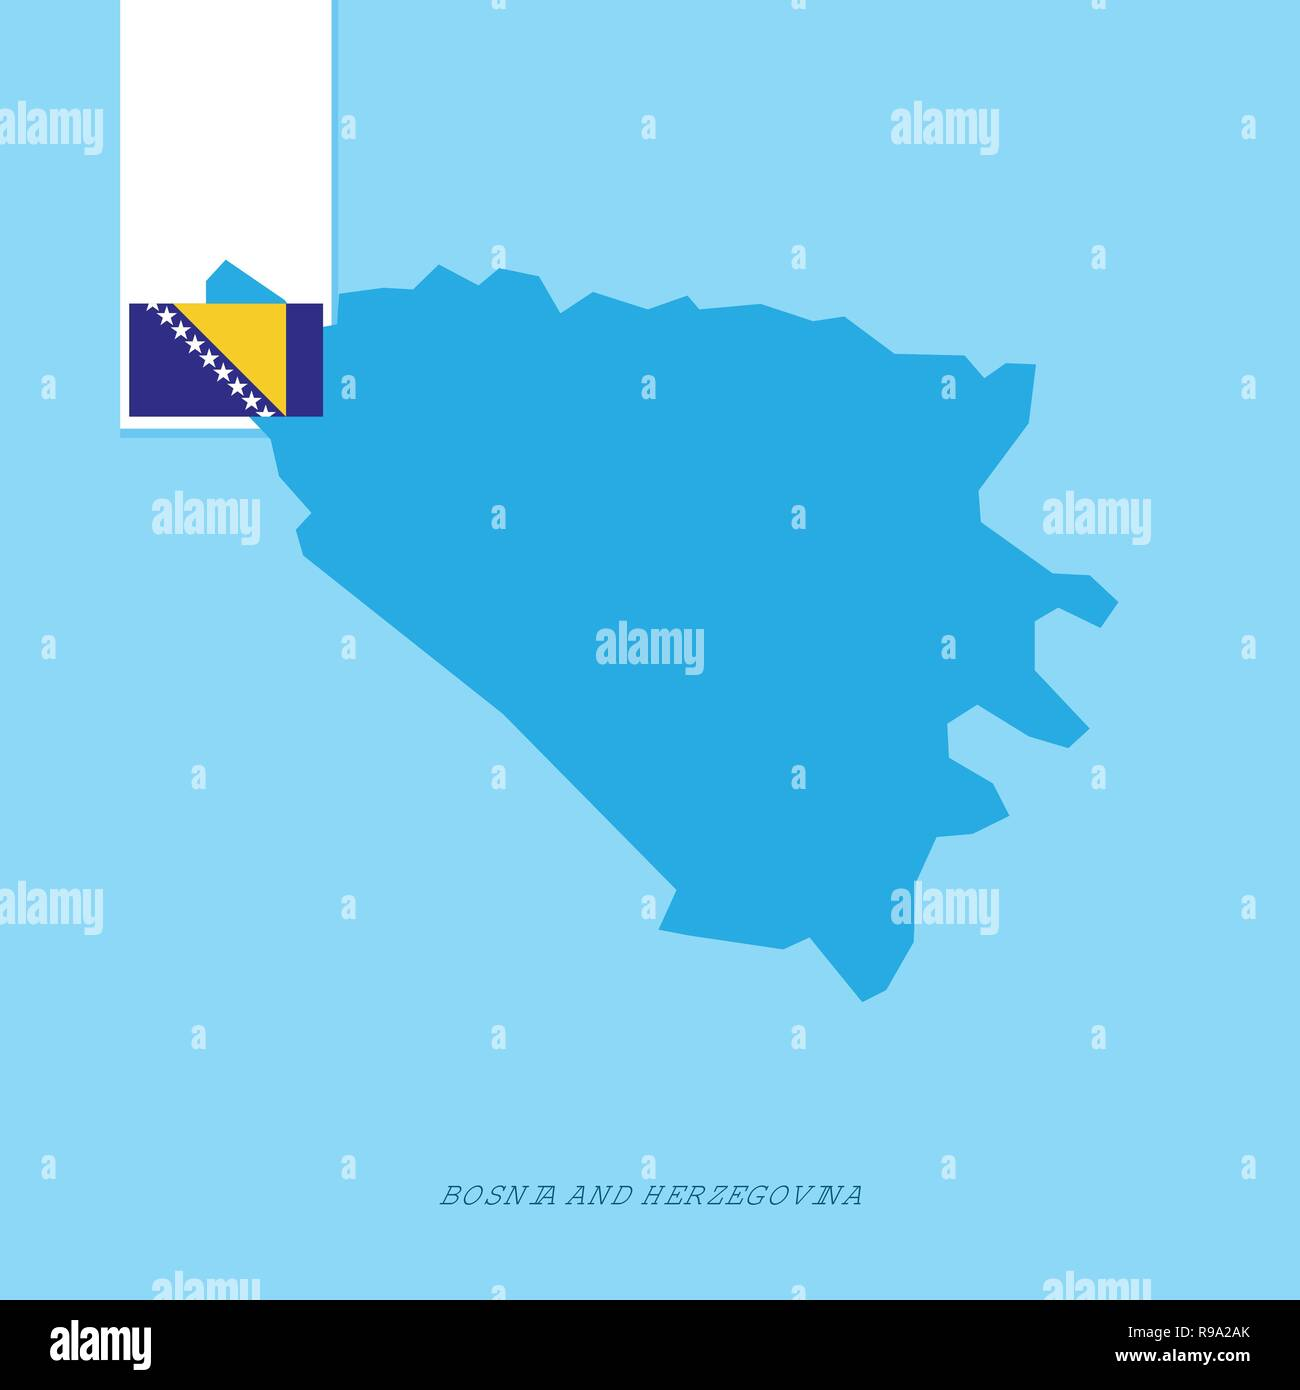 Bosnia and Herzegovina Country Map with Flag over Blue background - Stock Vector